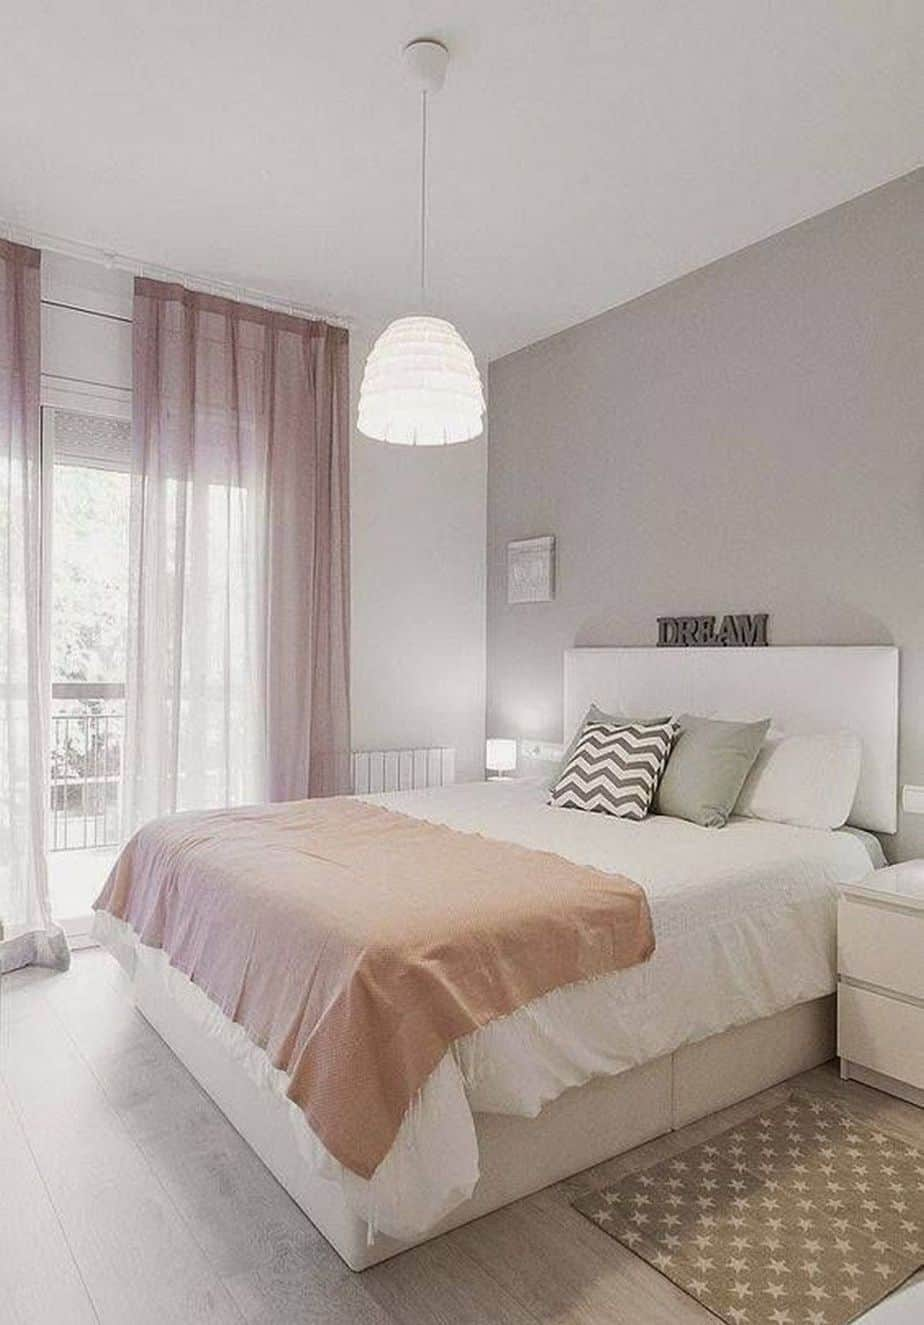 10 Excellent Young Lady Bedroom Design 13 About Remodel Furniture Home Design Ideas by Young Lady Bedroom Design